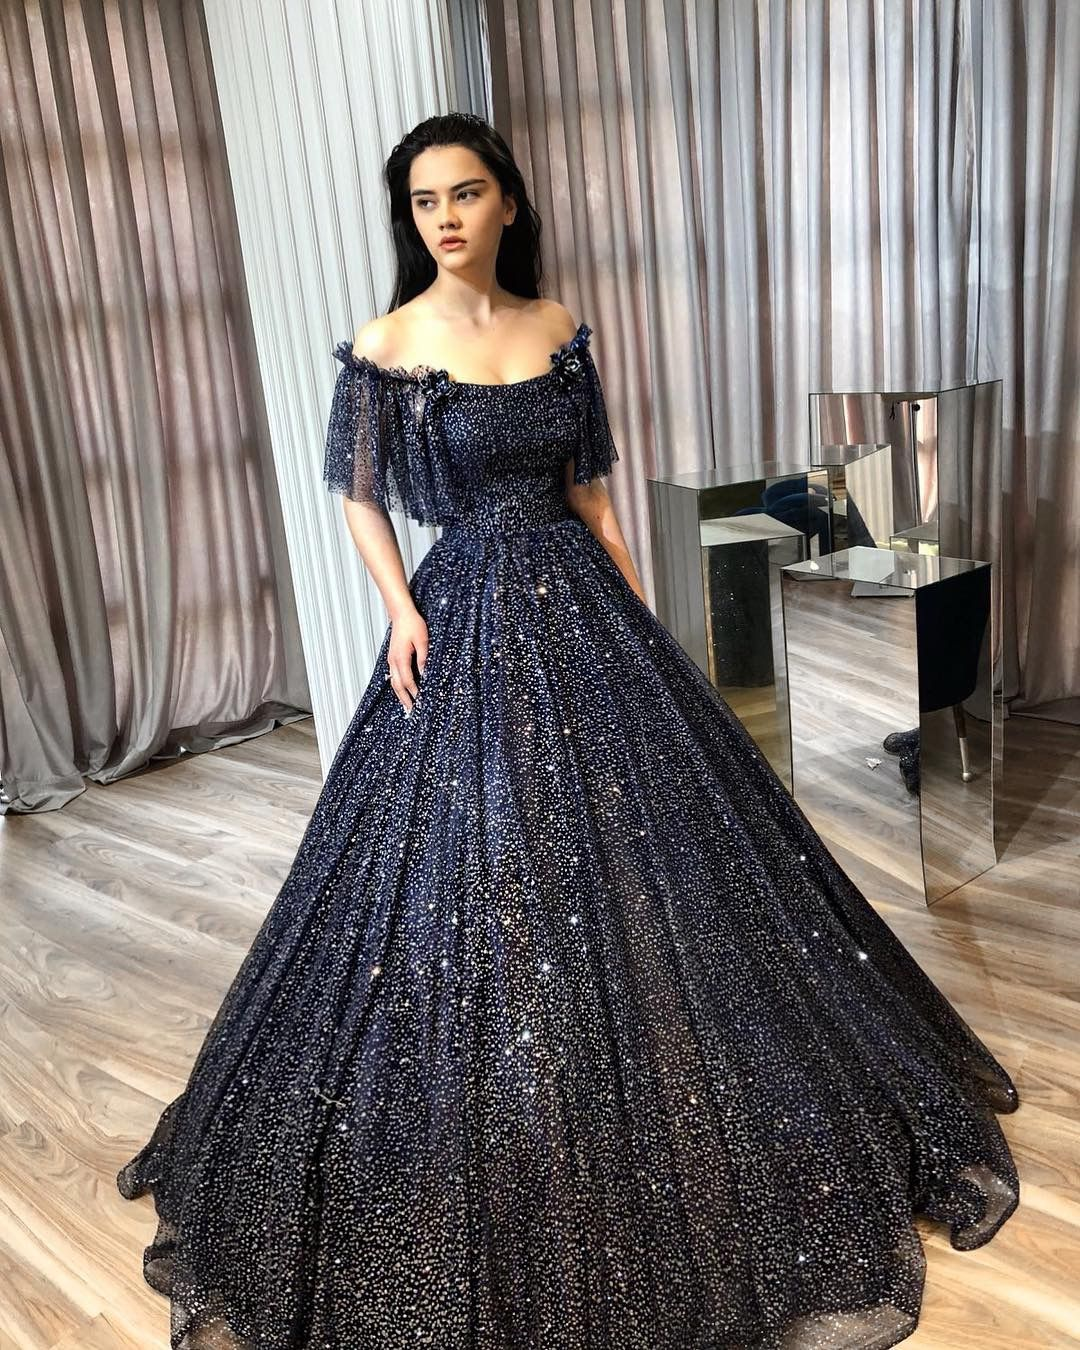 Sparkly Navy Blue Dress By Lena Berisha Starry Night Wedding Inspiration Starry Night Dress Night Dress Prom Night Dress